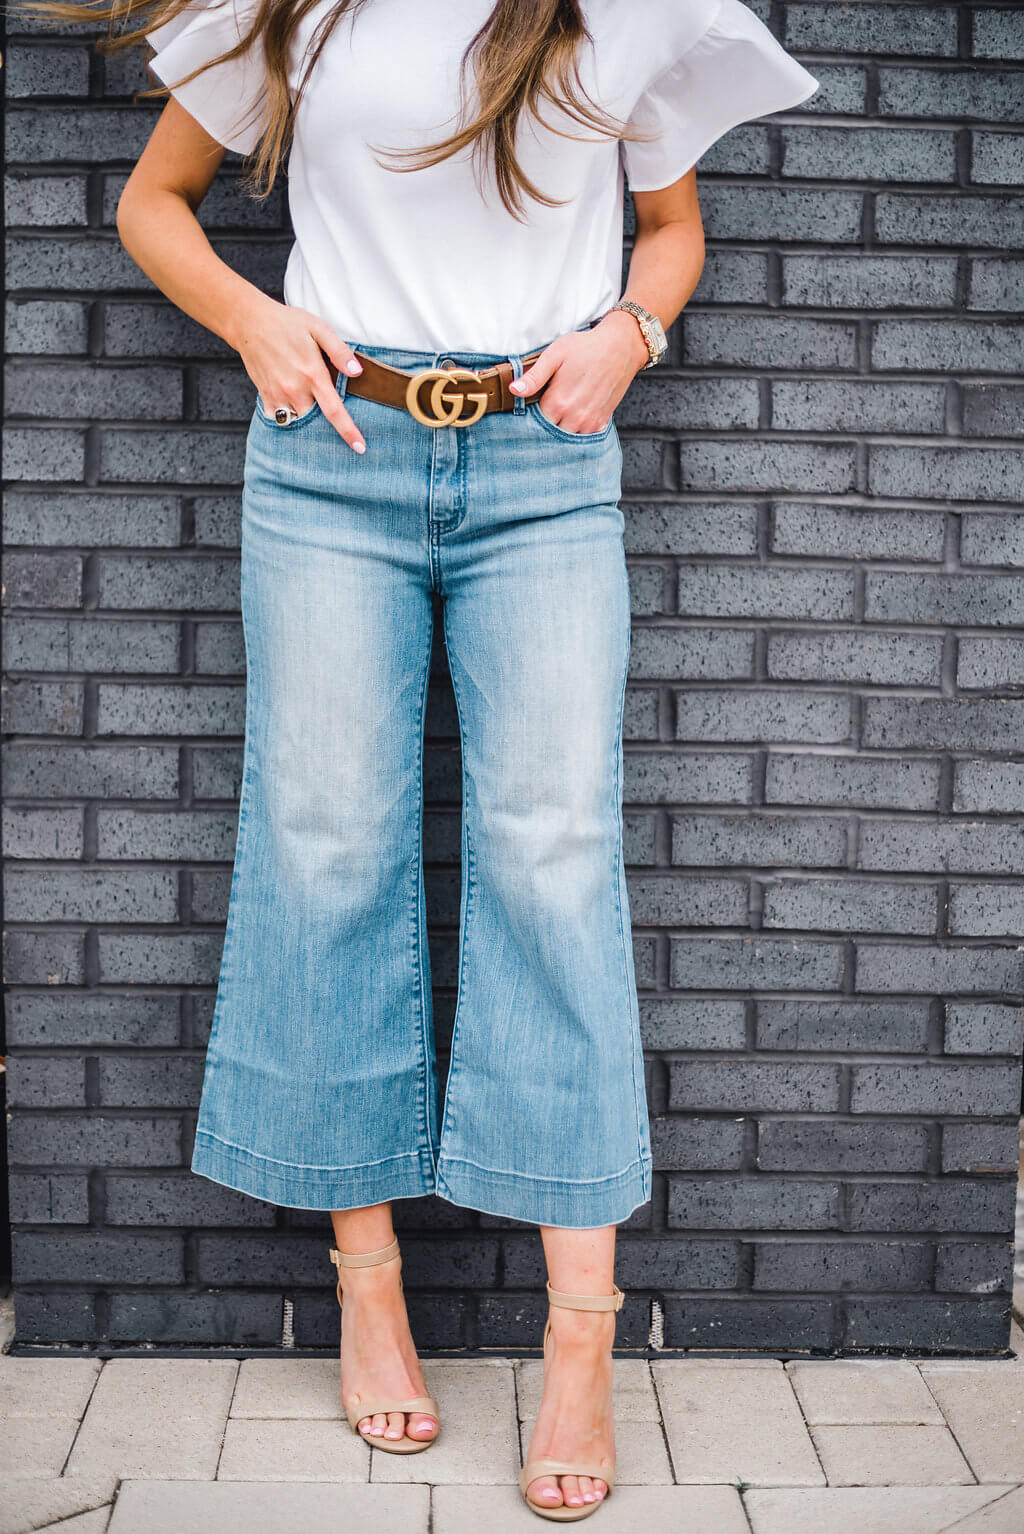 How to Style Wide Leg Crops 3 Ways